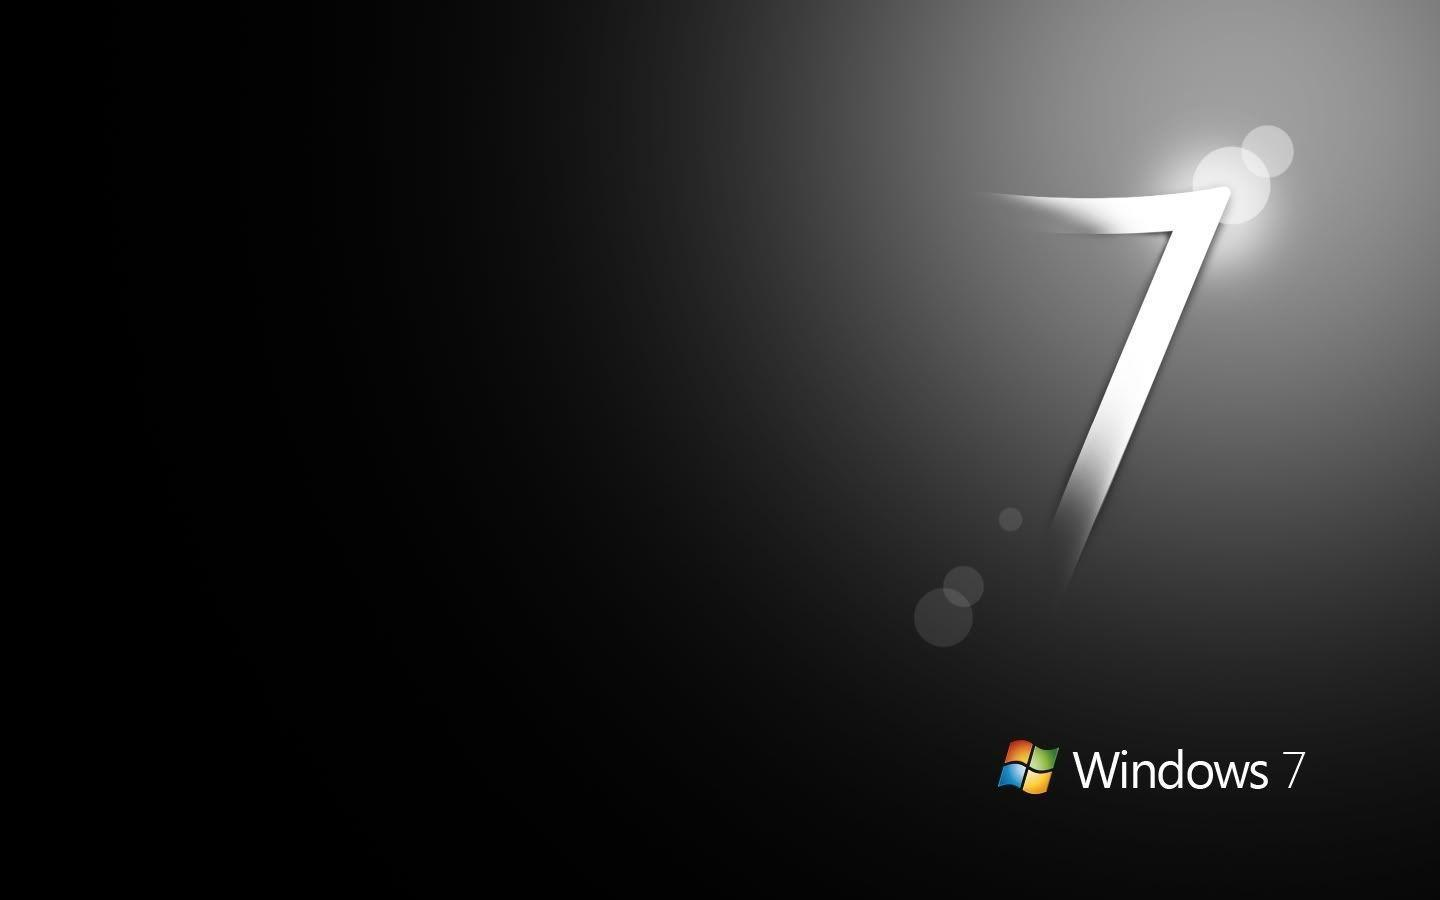 How To Fix Windows 7 Black Wallpaper Bug Fix Promised By Microsoft